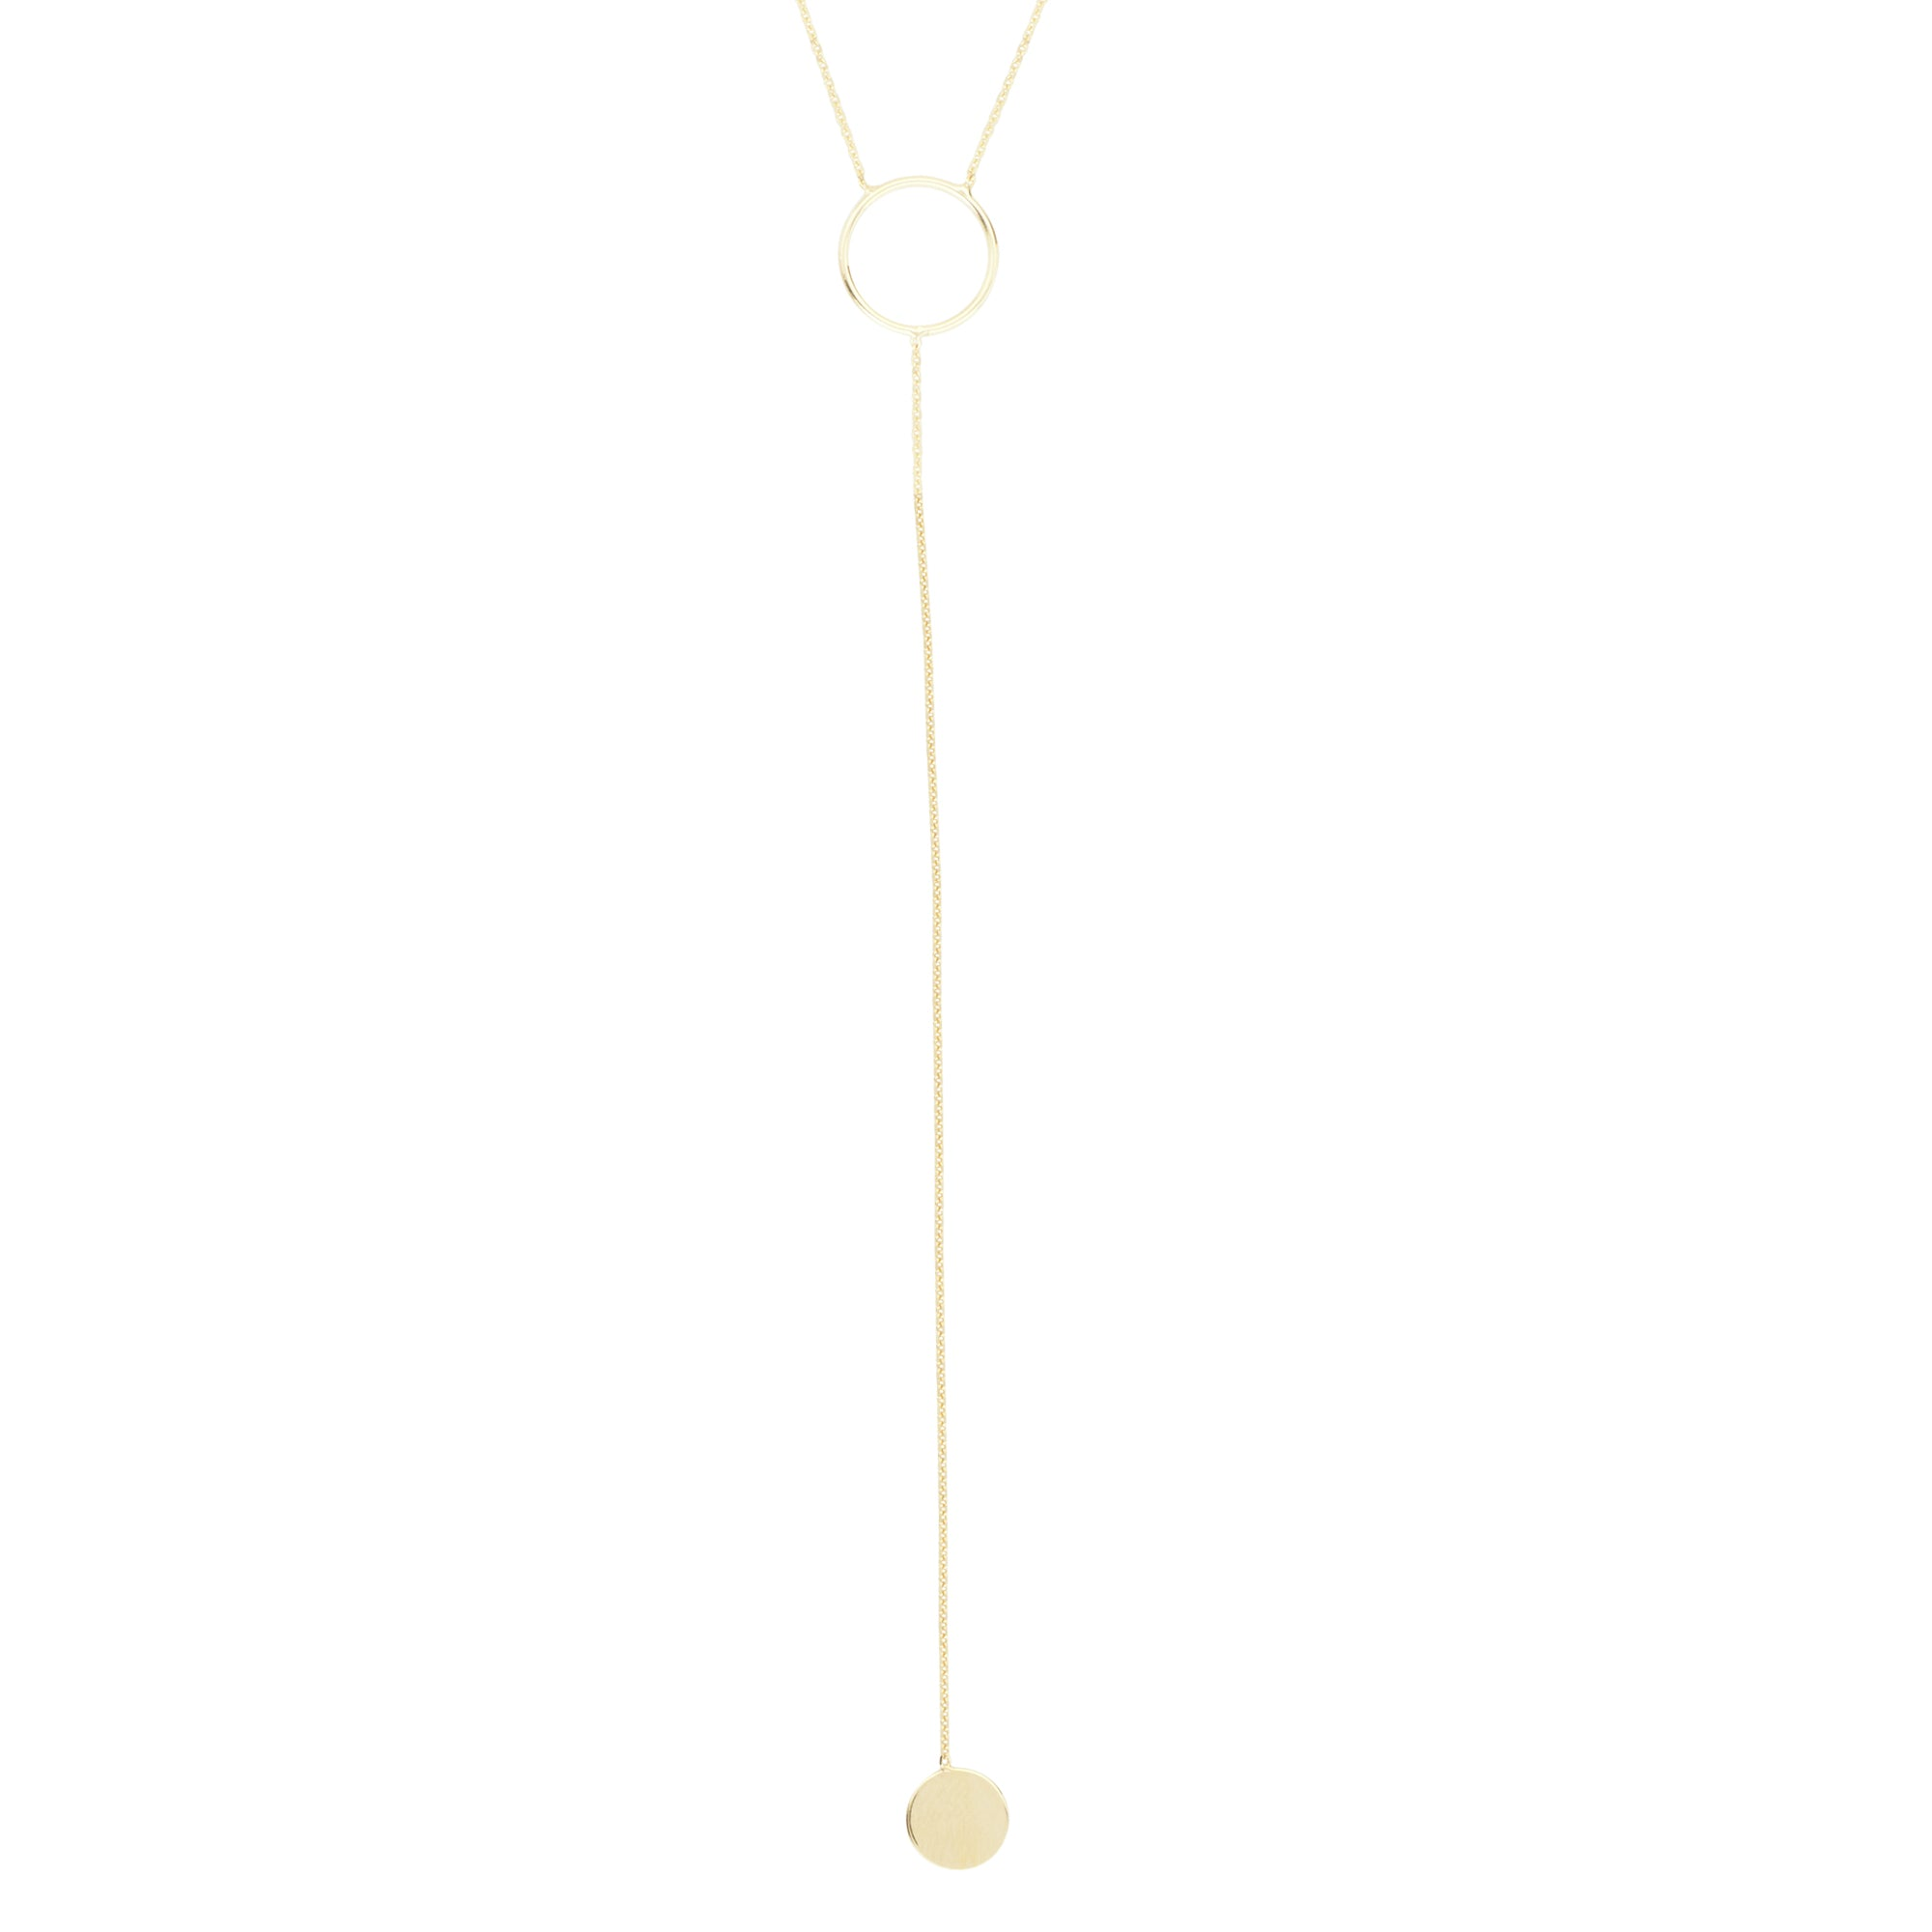 14K Yellow Gold Hawley St, Circle and Small Disk Lariat Necklace